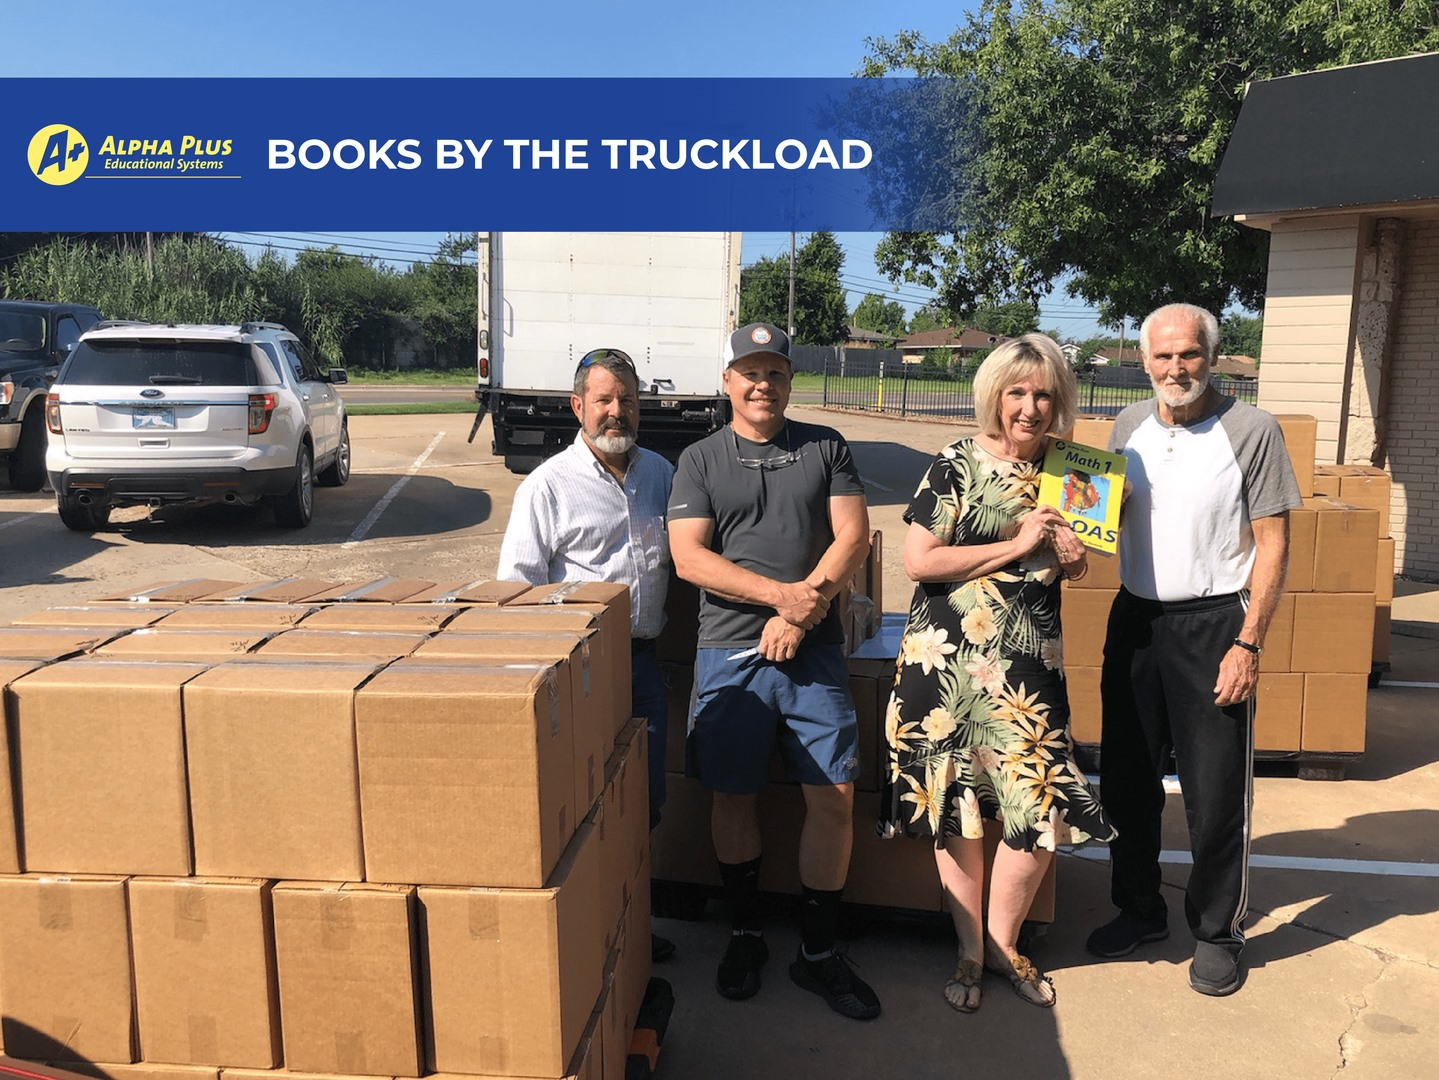 A Plus Books by the truckload